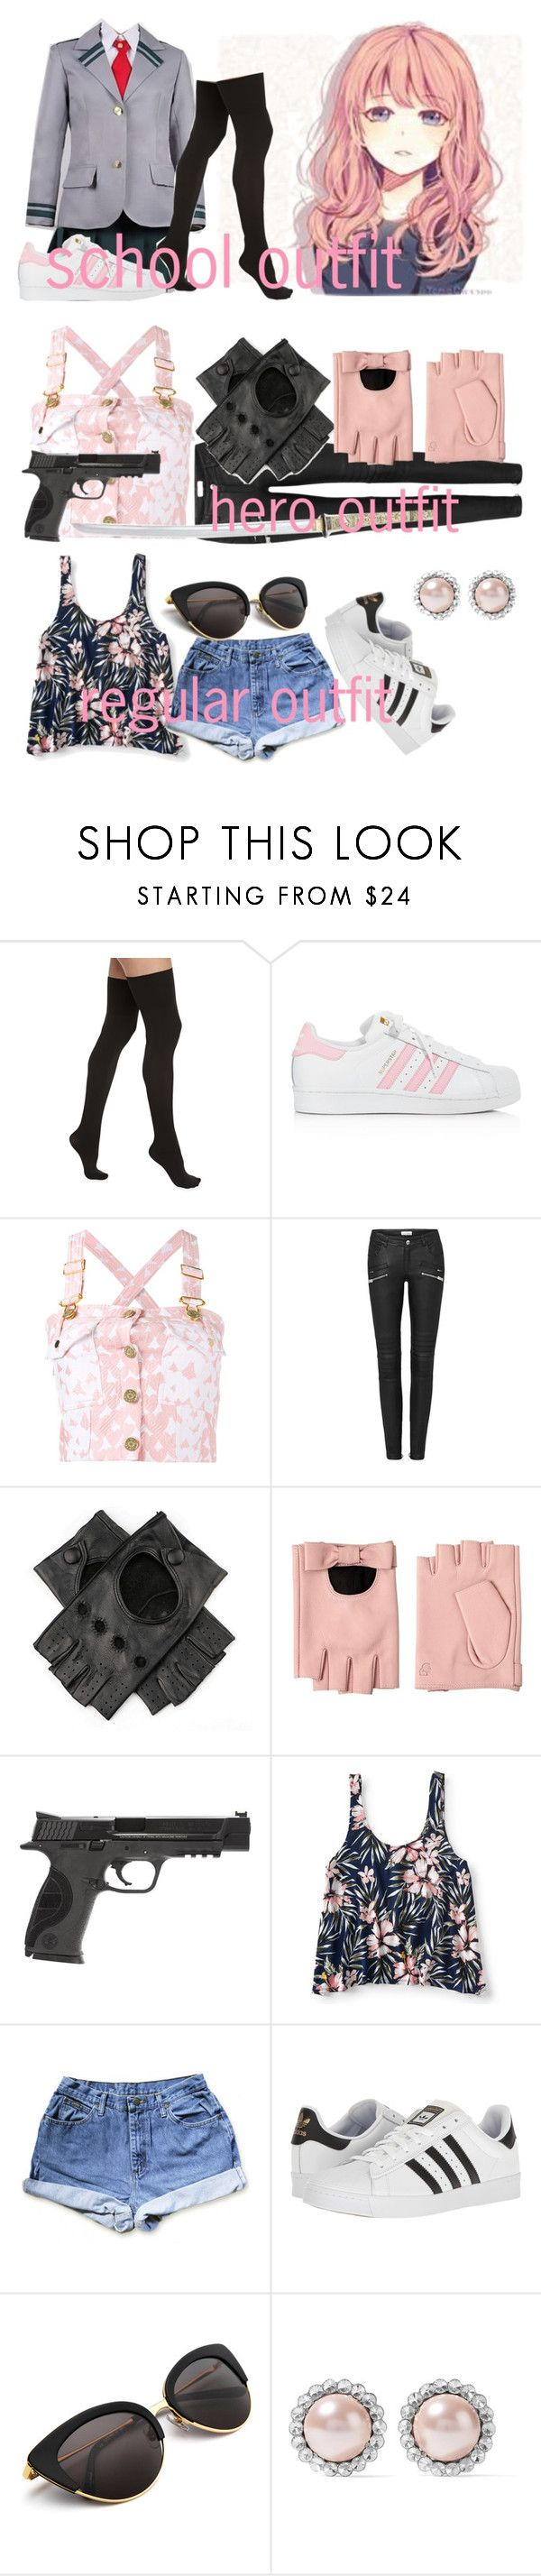 """i n t r o"" by itsgracie18 ❤ liked on Polyvore featuring Commando, adidas, House of Holland, Black, Karl Lagerfeld, Smith & Wesson, Aéropostale and Miu Miu"